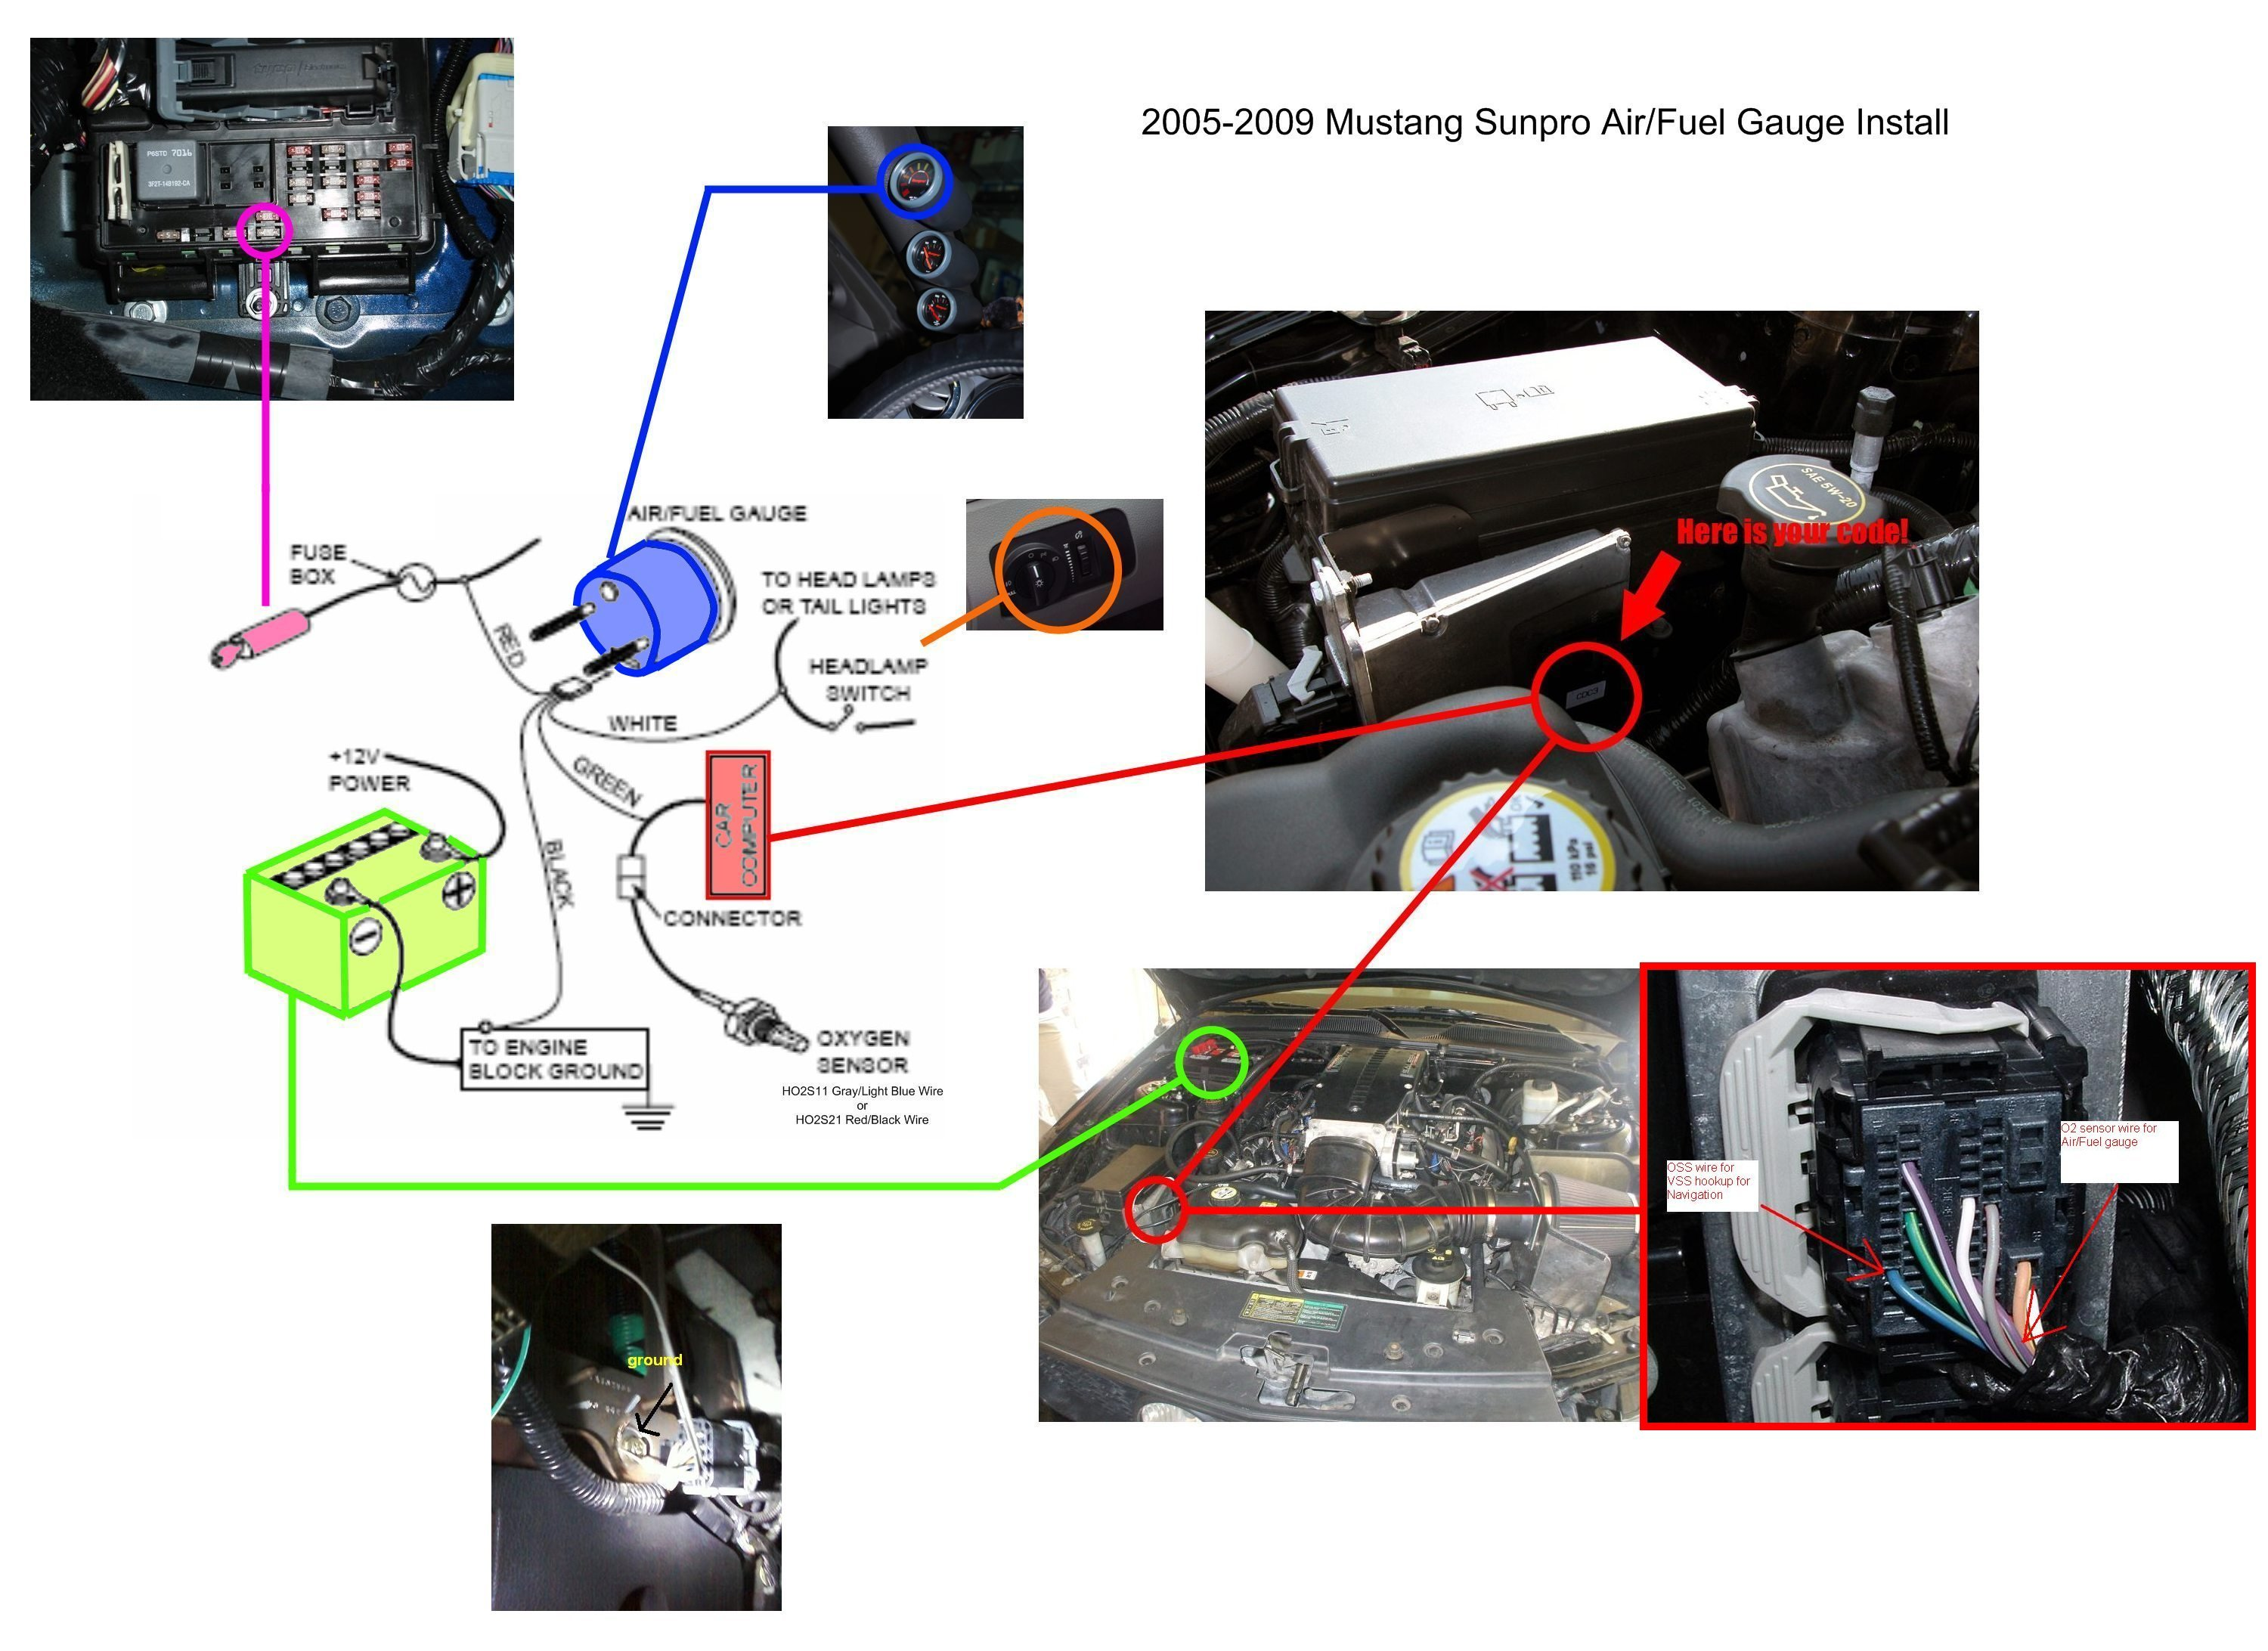 81950d1256410881 gauge install tech air fuel gauge sunpro fuel gauge wiring diagram bosch fuel gauge wiring diagram innovate air fuel ratio gauge wiring at gsmportal.co